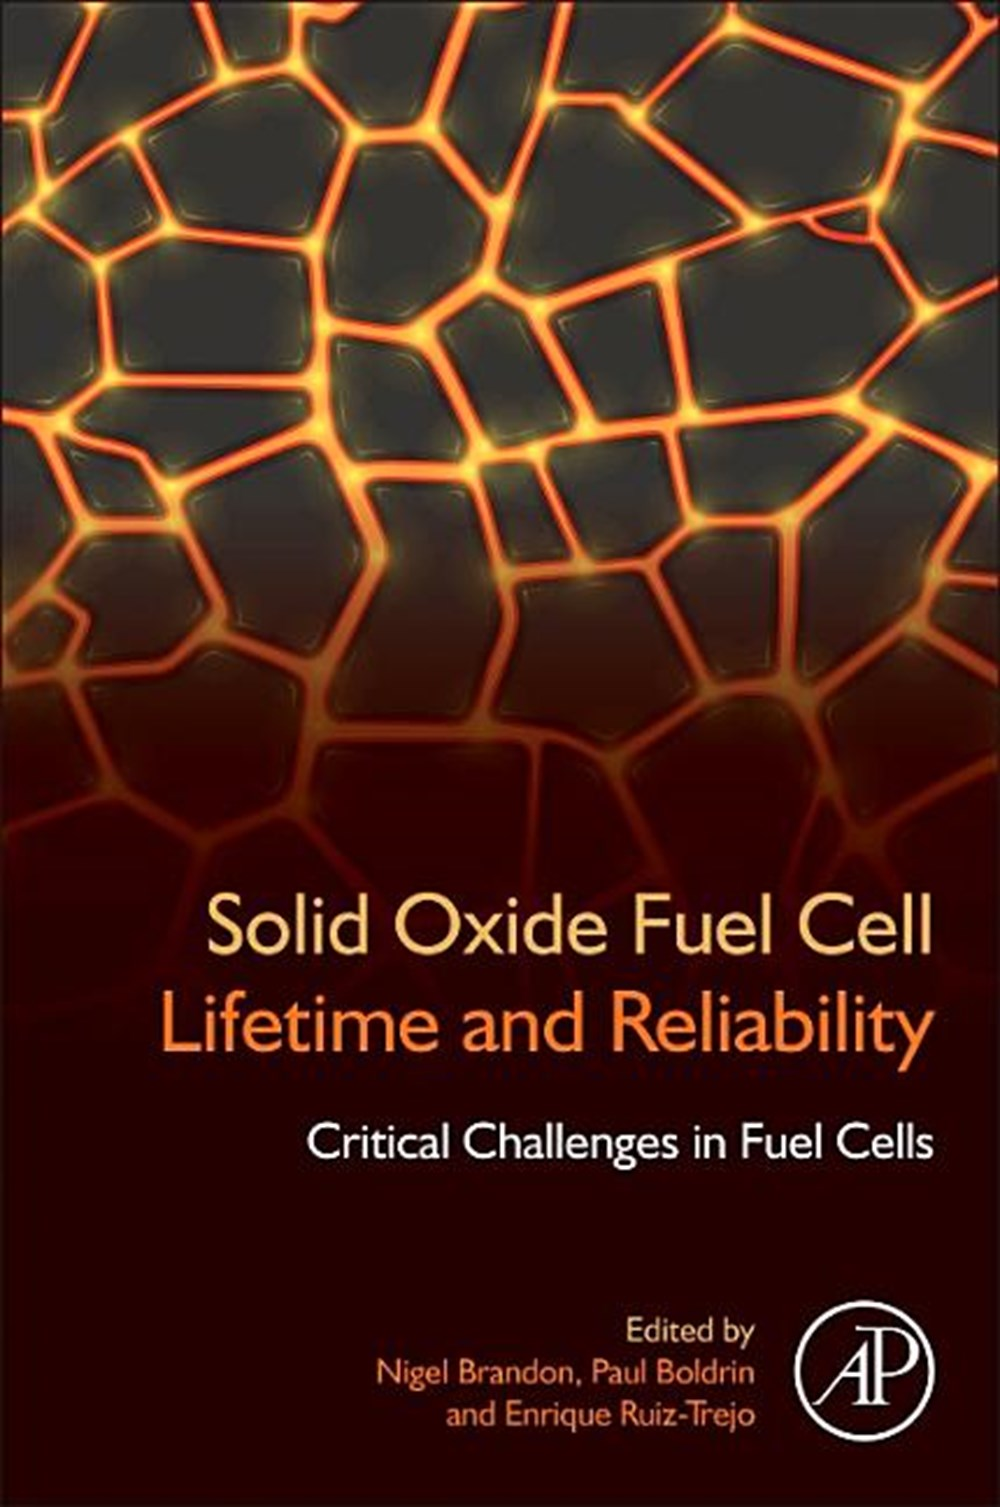 Solid Oxide Fuel Cell Lifetime and Reliability Critical Challenges in Fuel Cells